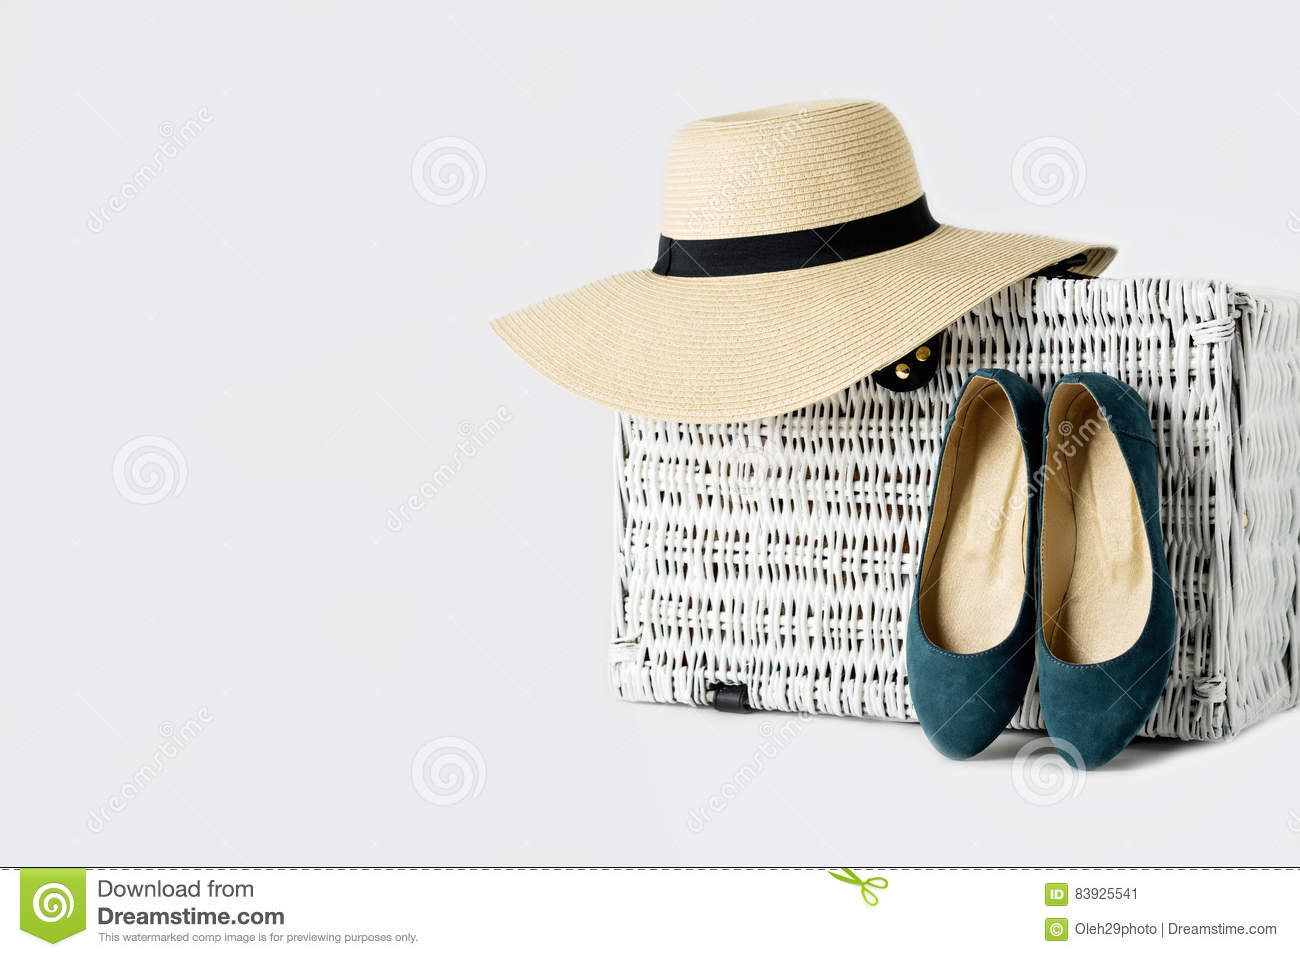 valise en osier blanche un chapeau du s de femme et chaussures bleues image stock image du. Black Bedroom Furniture Sets. Home Design Ideas